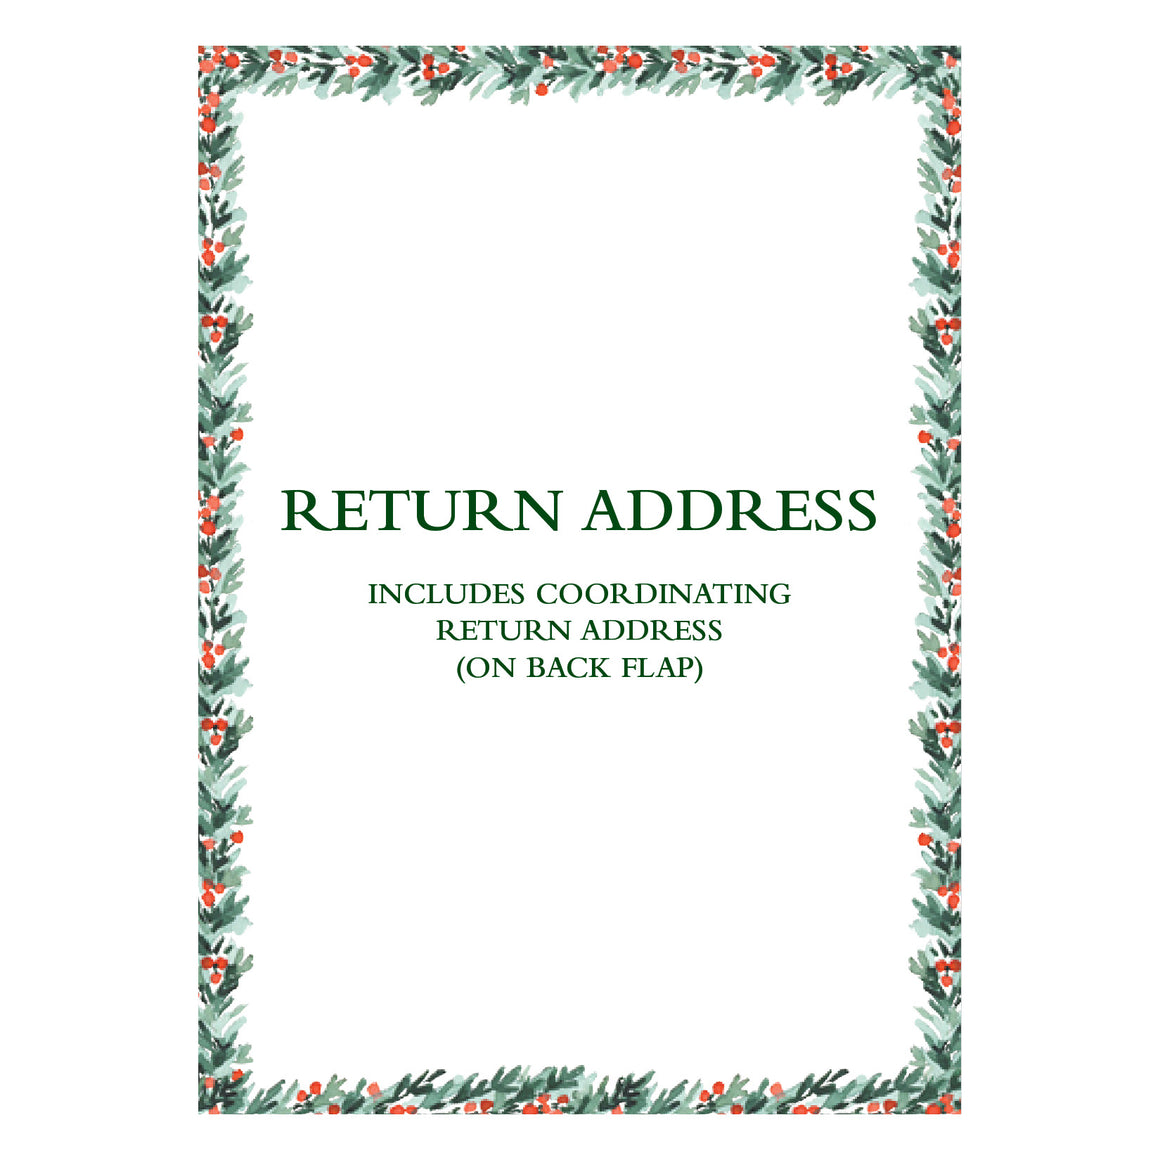 Return Address Printing On Back Flap